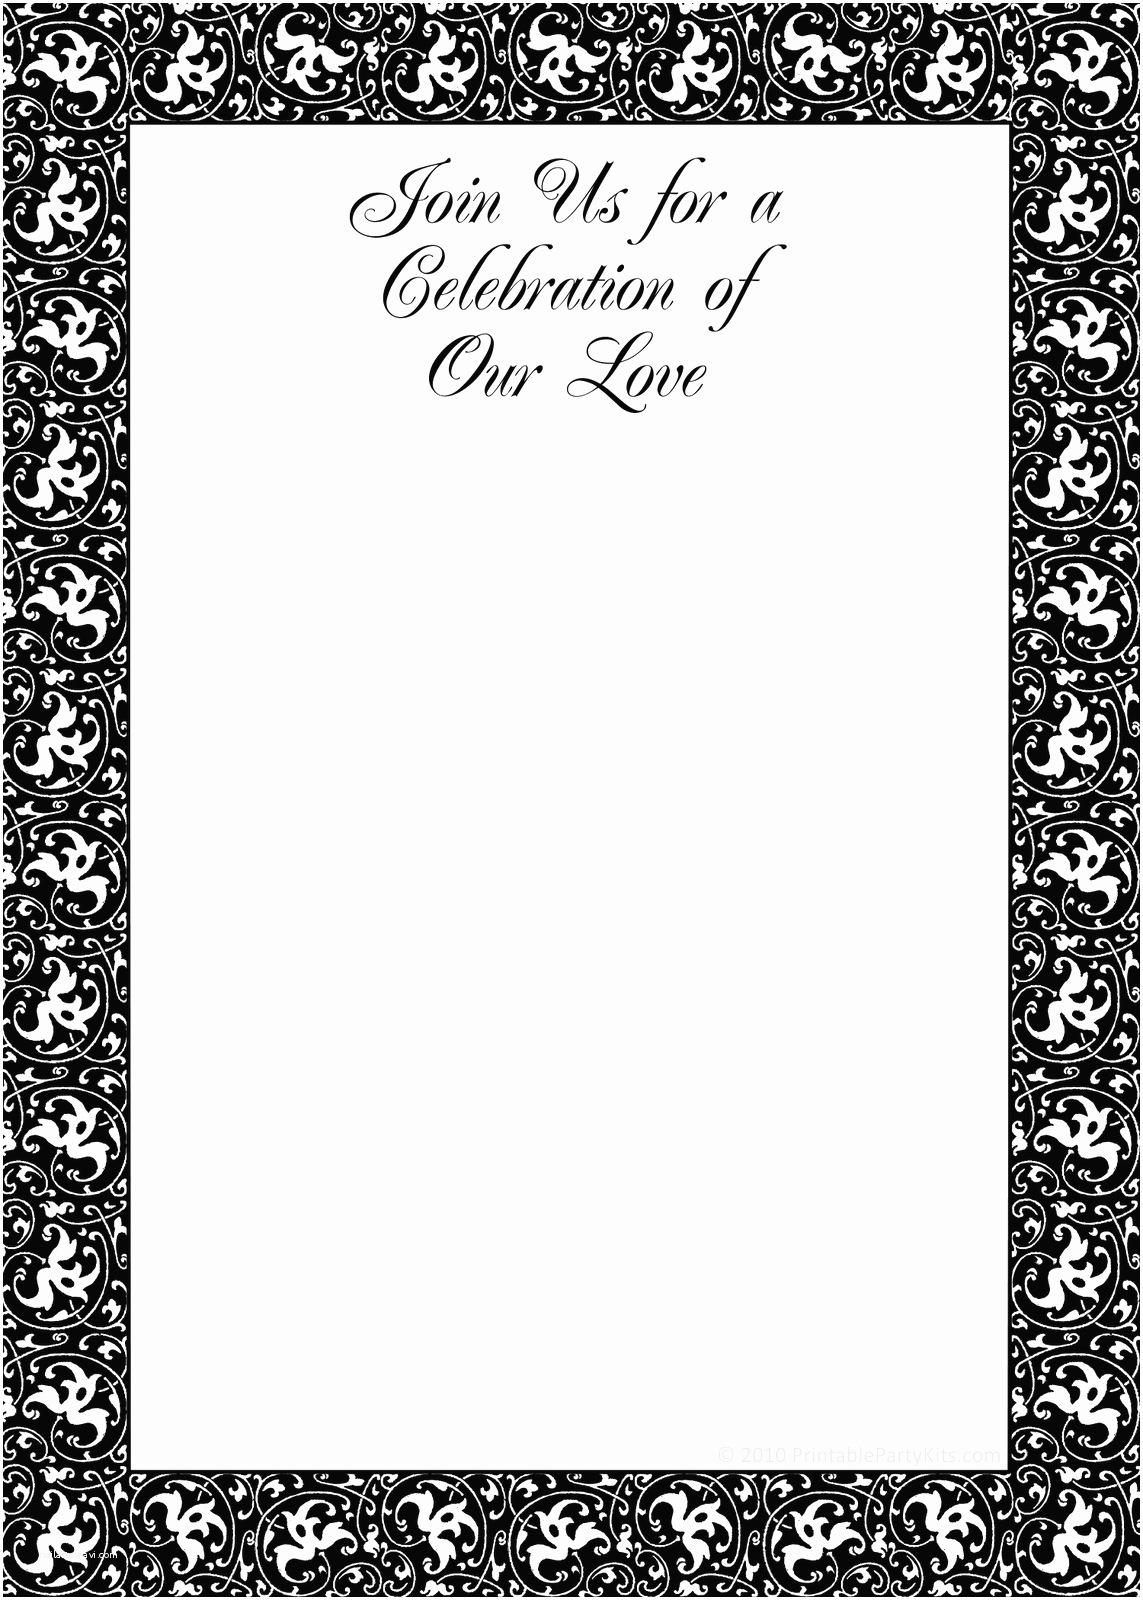 Wedding Invitations To Print At Home For Free Email Invitation